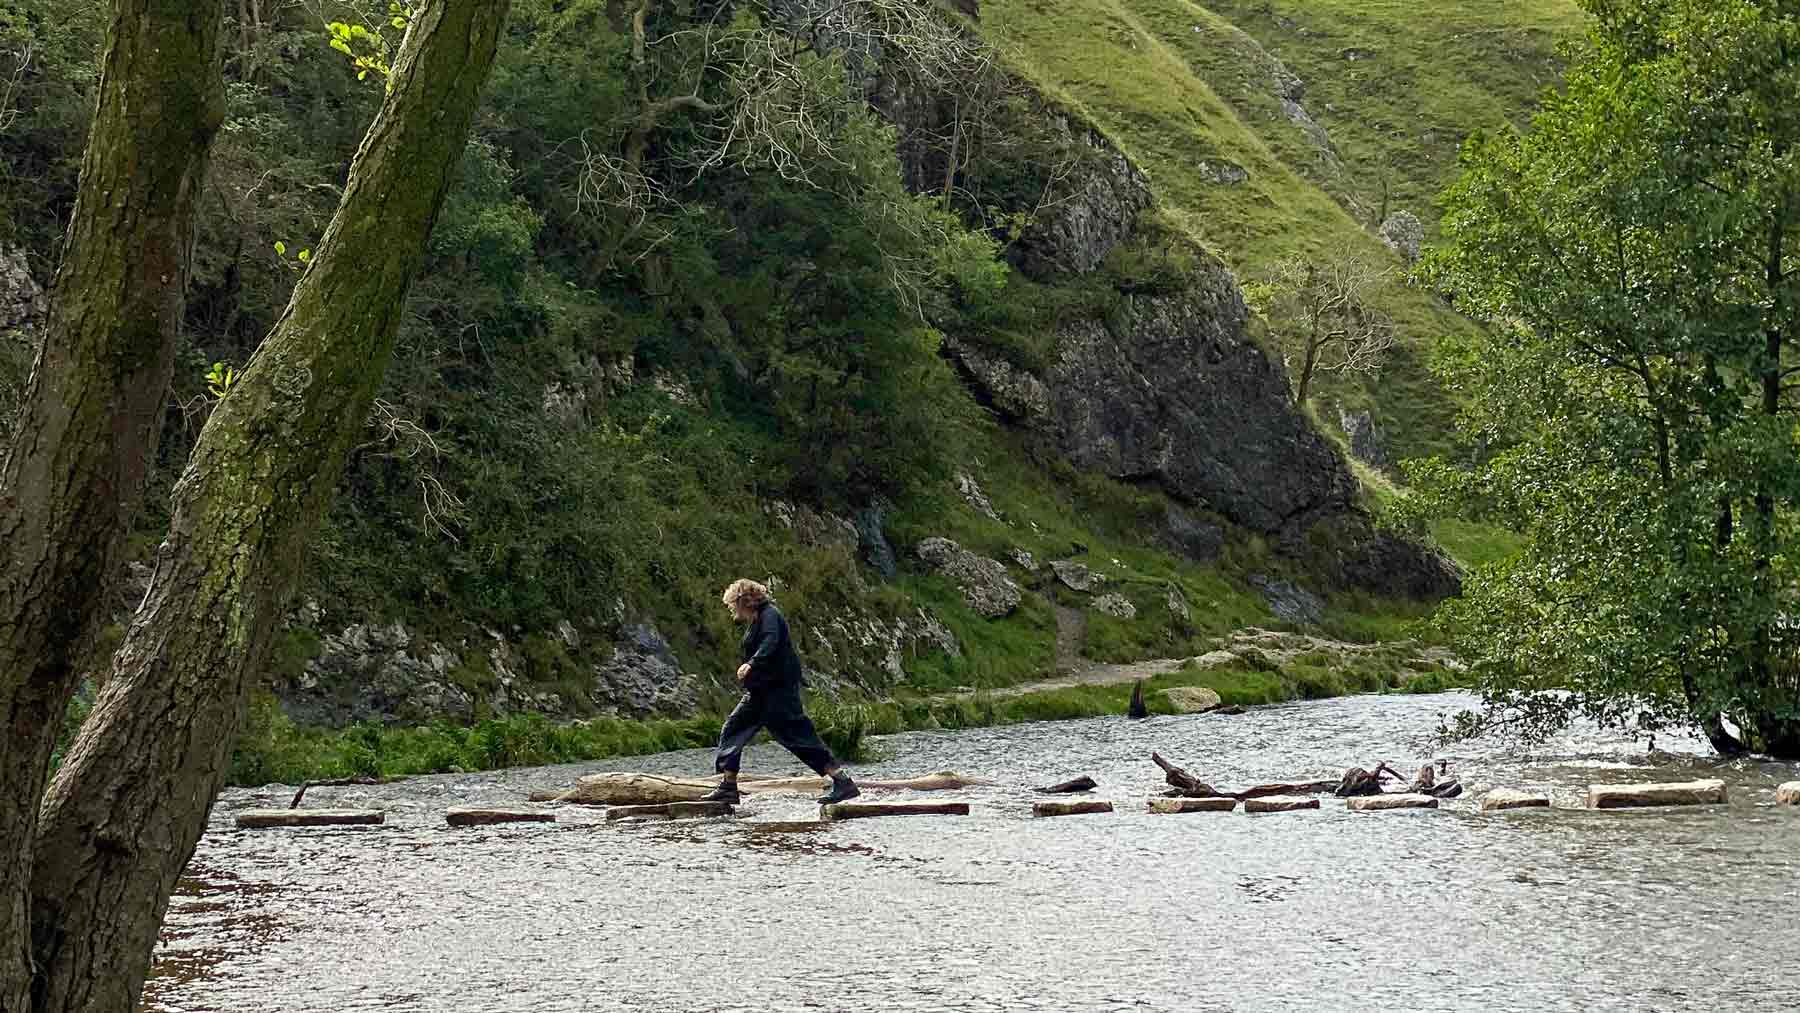 Clare crossing the Dovedale Steeping Stones, wearing Asmuss, in the Peak District